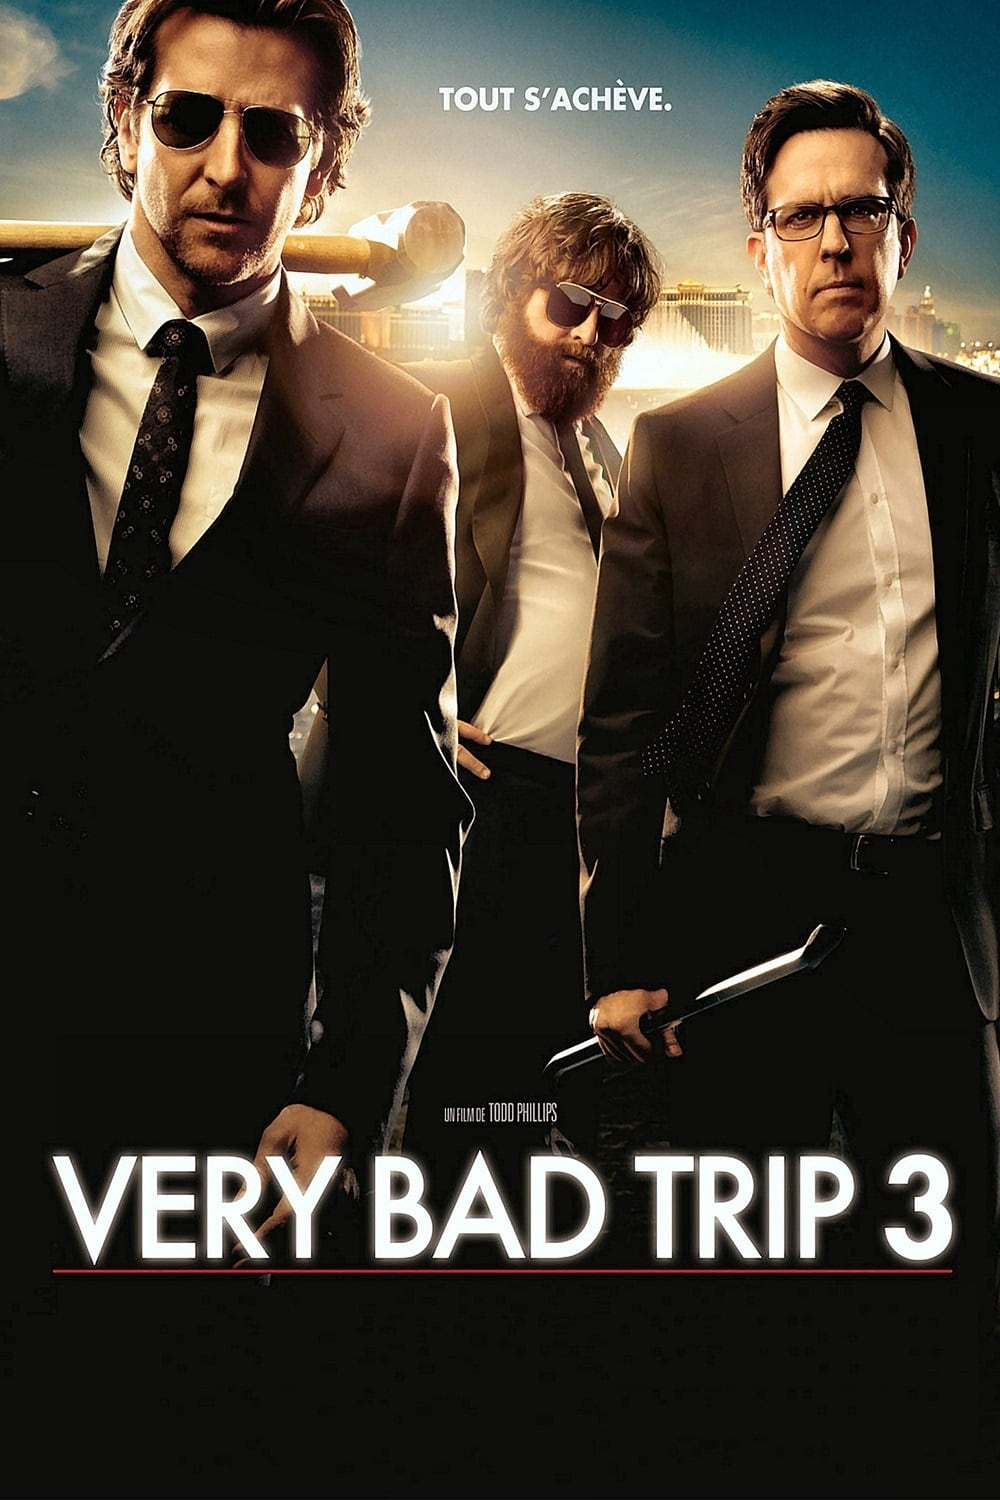 Regarder Very Bad Trip 3 en streaming gratuit